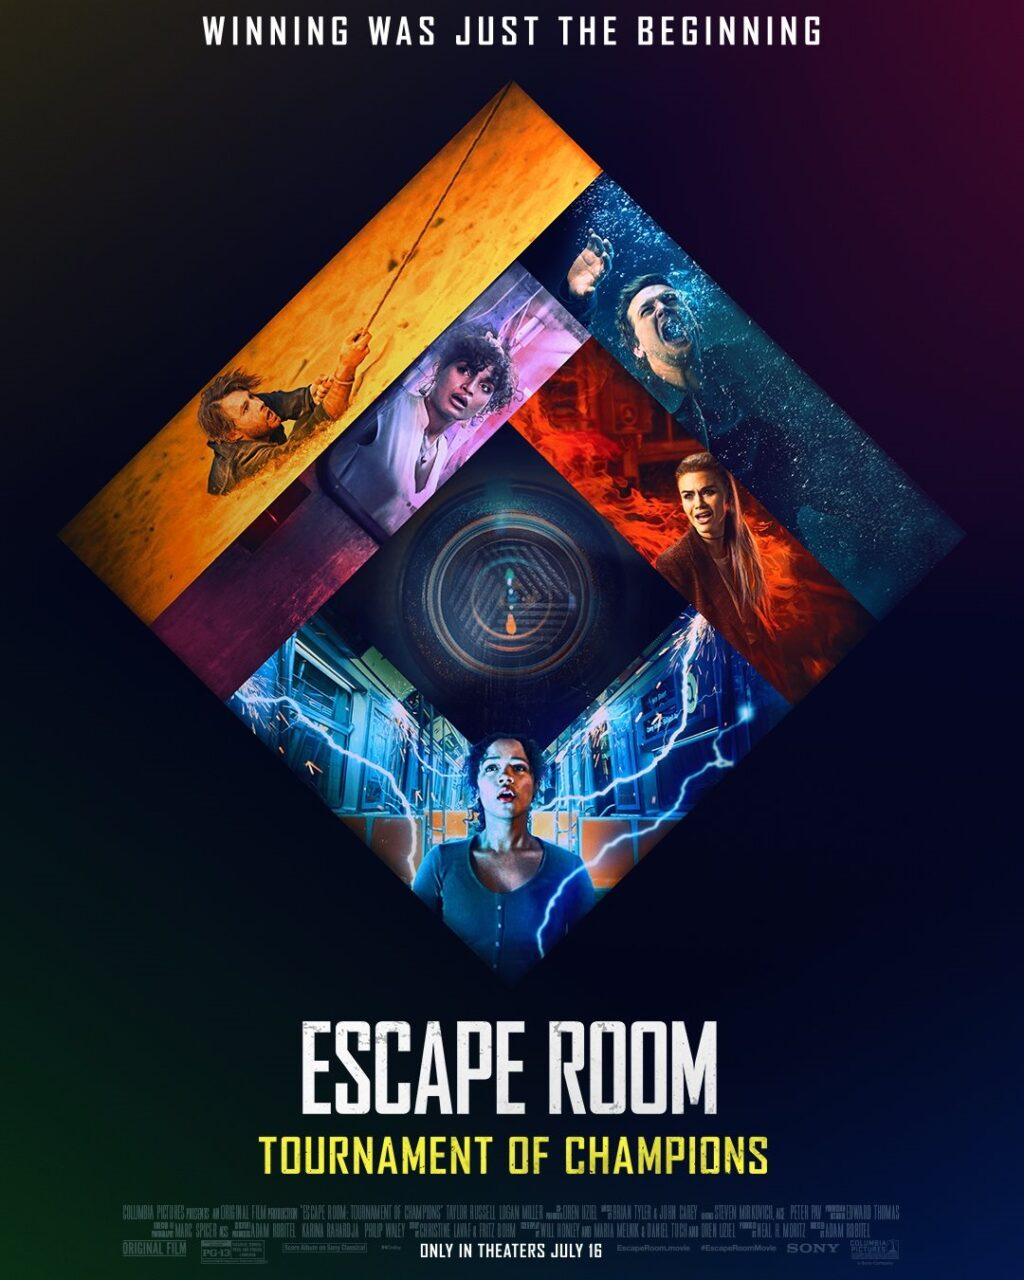 escape room 2 poster 1024x1280 - ESCAPE ROOM: TOURNAMENT OF CHAMPIONS Review - More Mysterious Than the Original